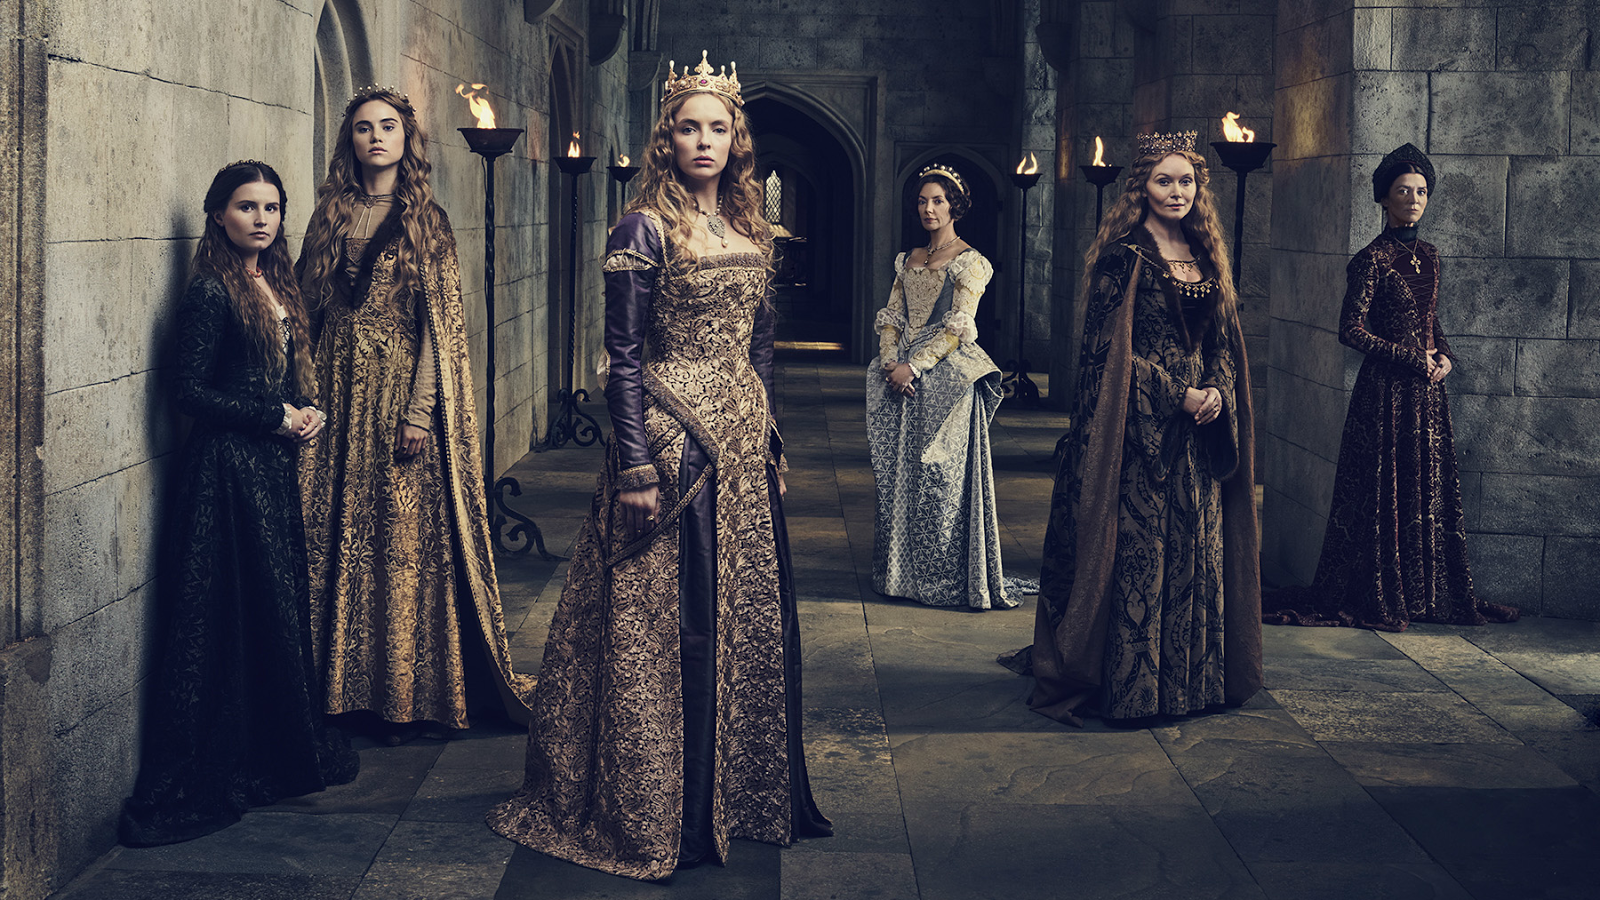 The women of The White Princess (Starz)